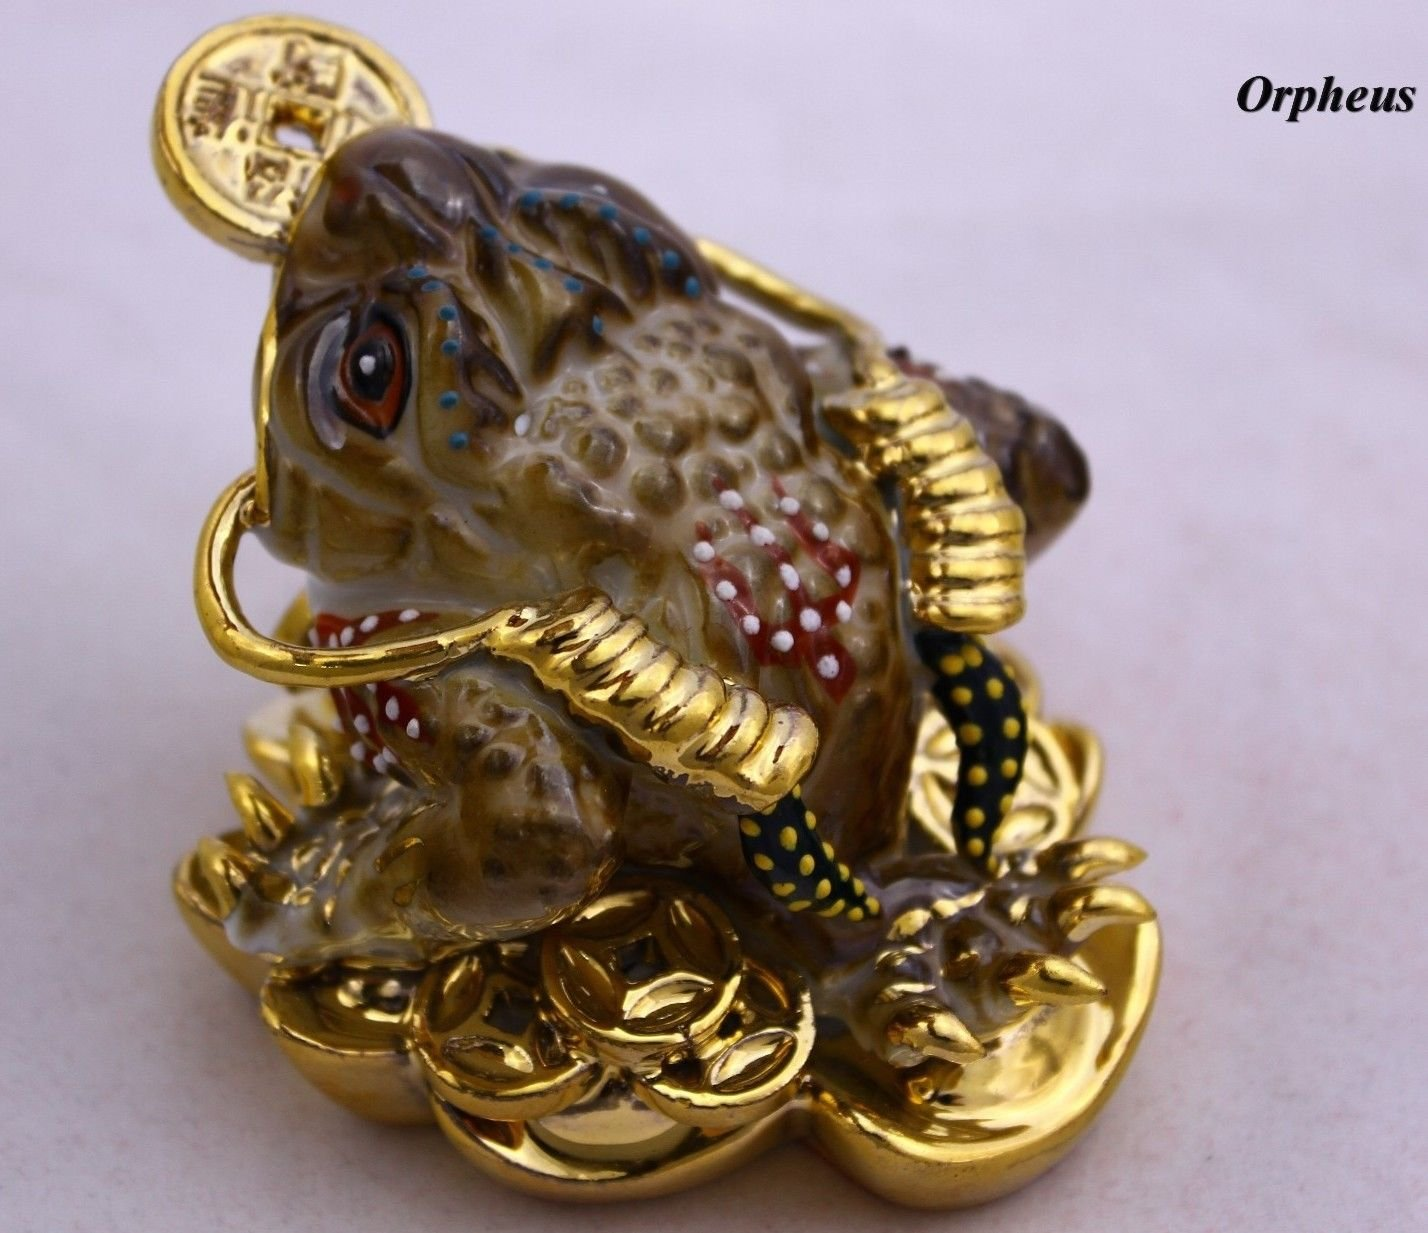 Three Legged Wealth Toad - Money Frog Feng Shui Chinese Porcelain,figurine 2048. (Brown)